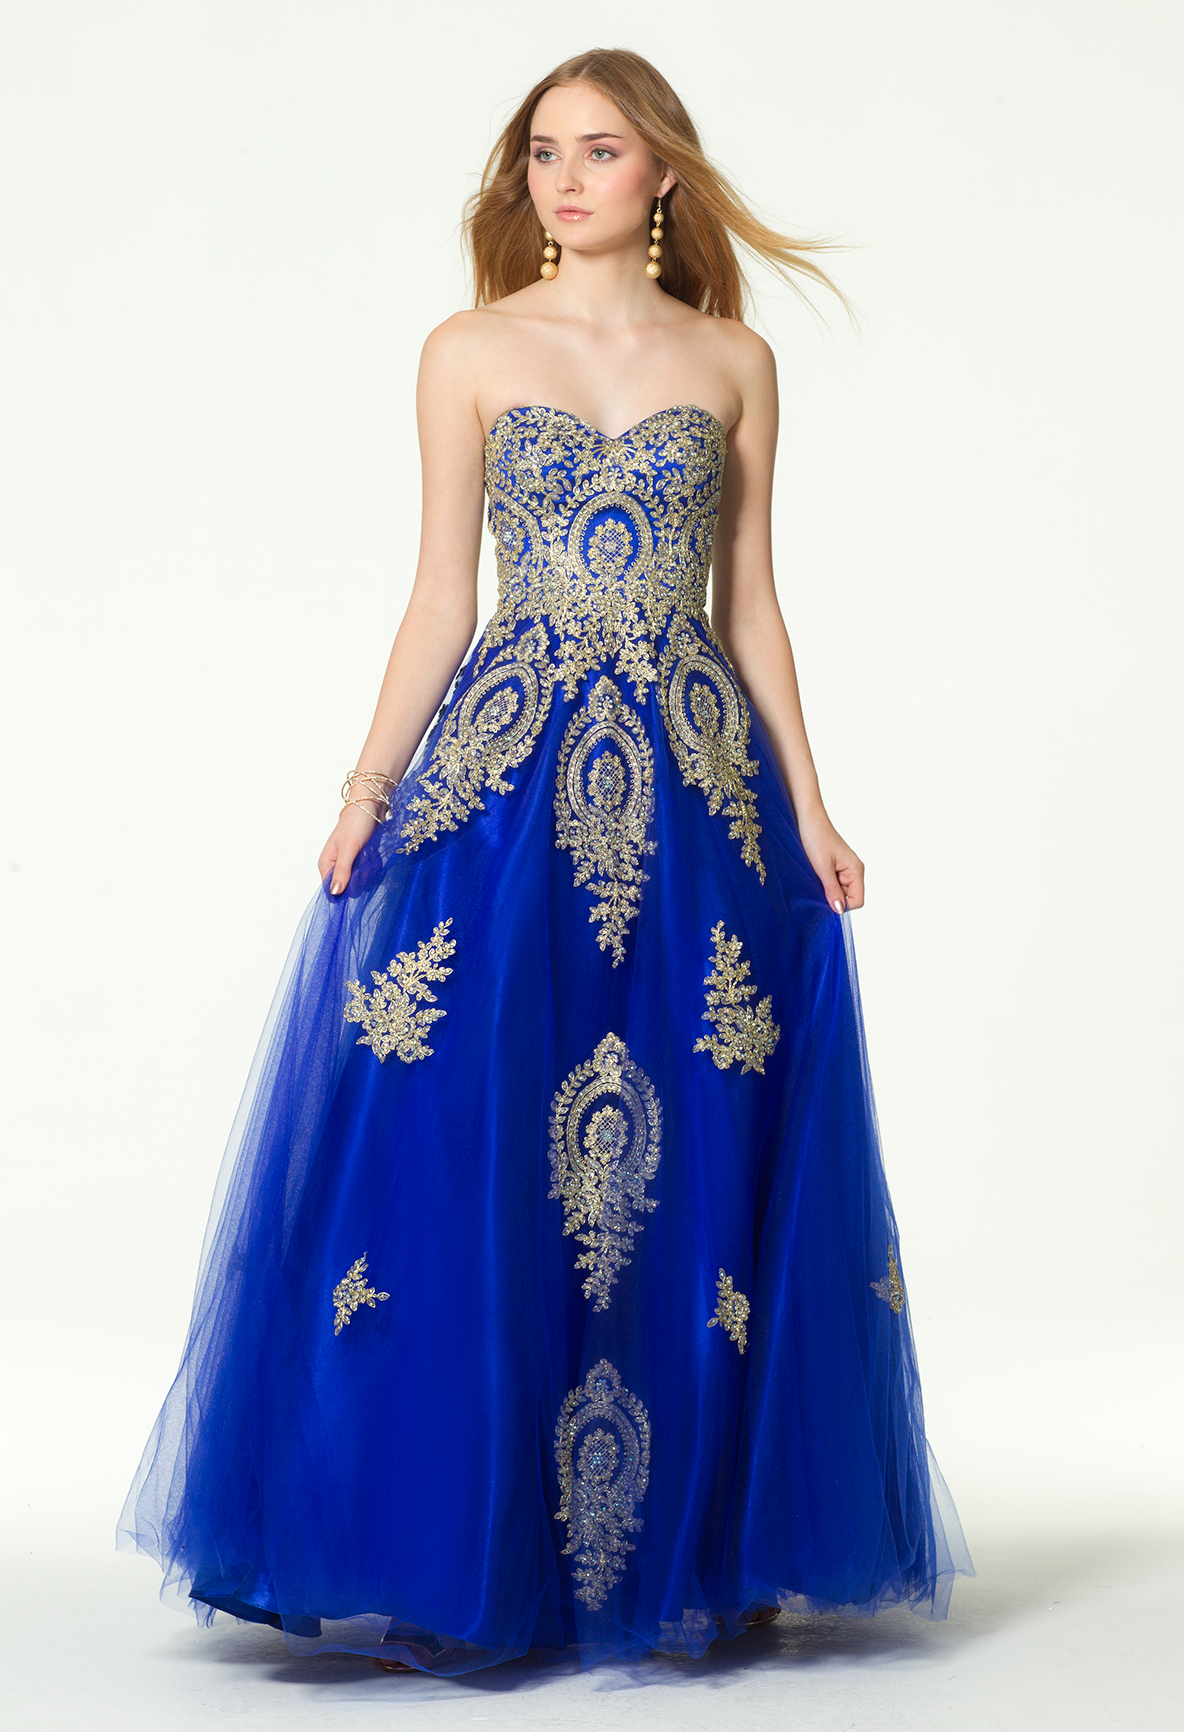 9b1540054ea6 Claim the crown in this A-line prom dress! With its sweetheart neckline,  fitted embroidered bodice, and ball gown skirt, this evening gown is ready  for its ...